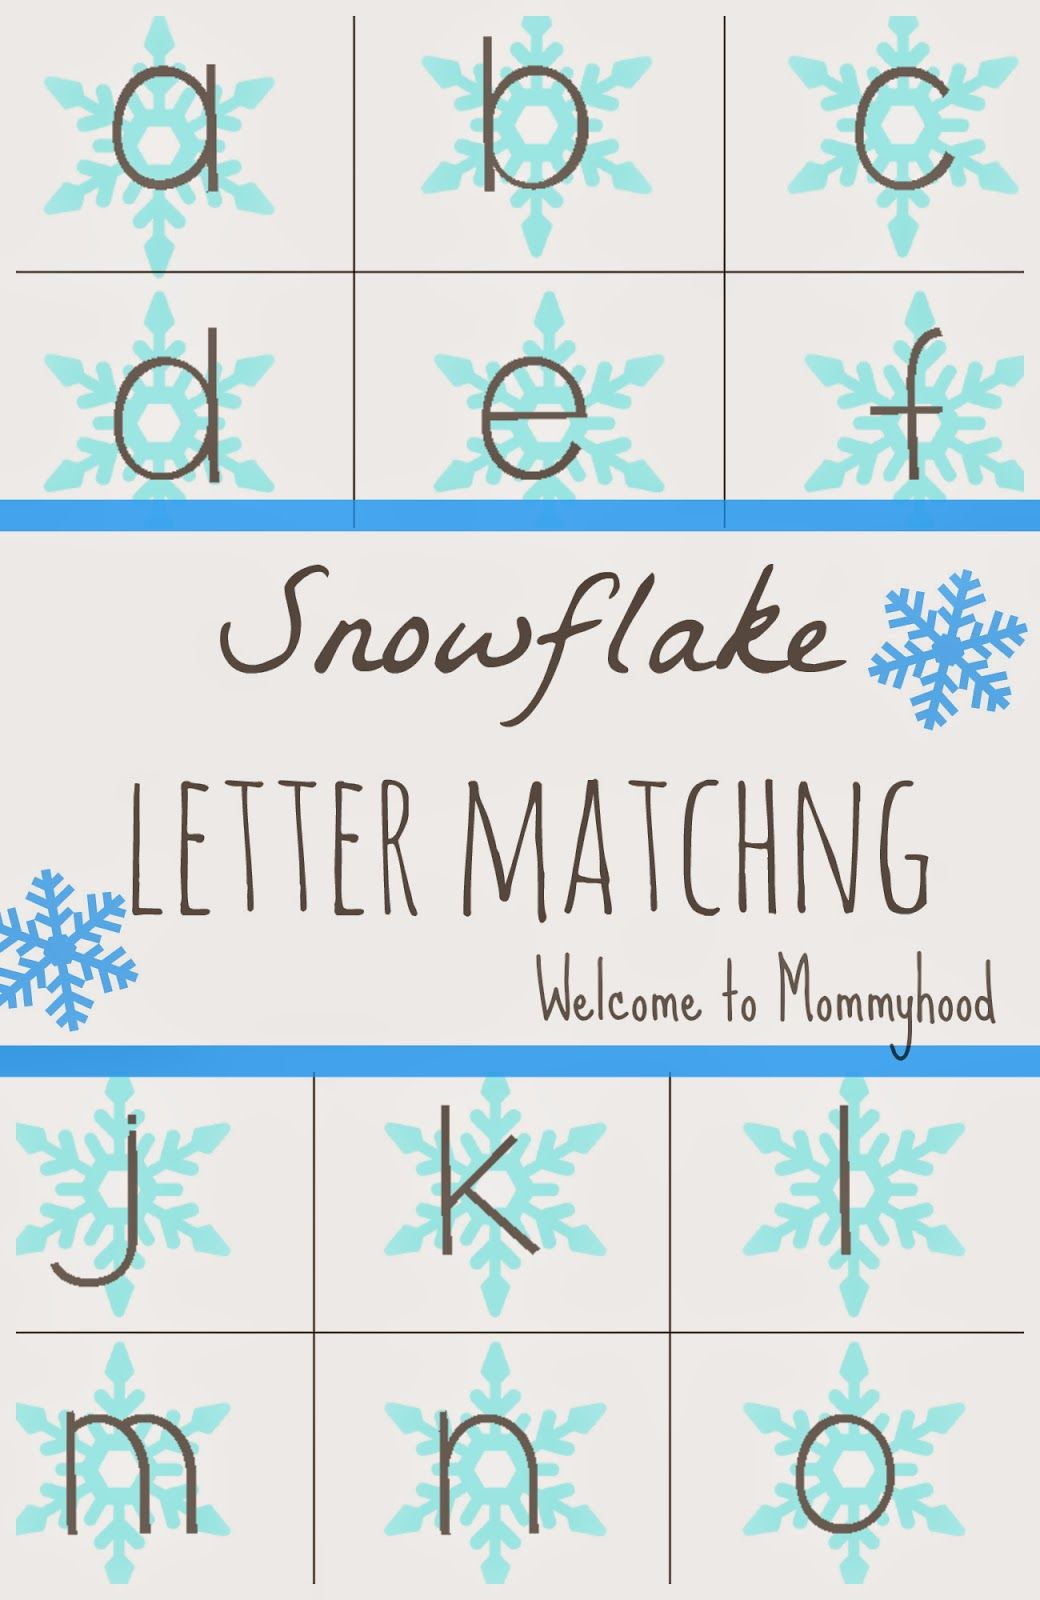 Snowflake Letter Matching Free From Welcome To Mommyhood